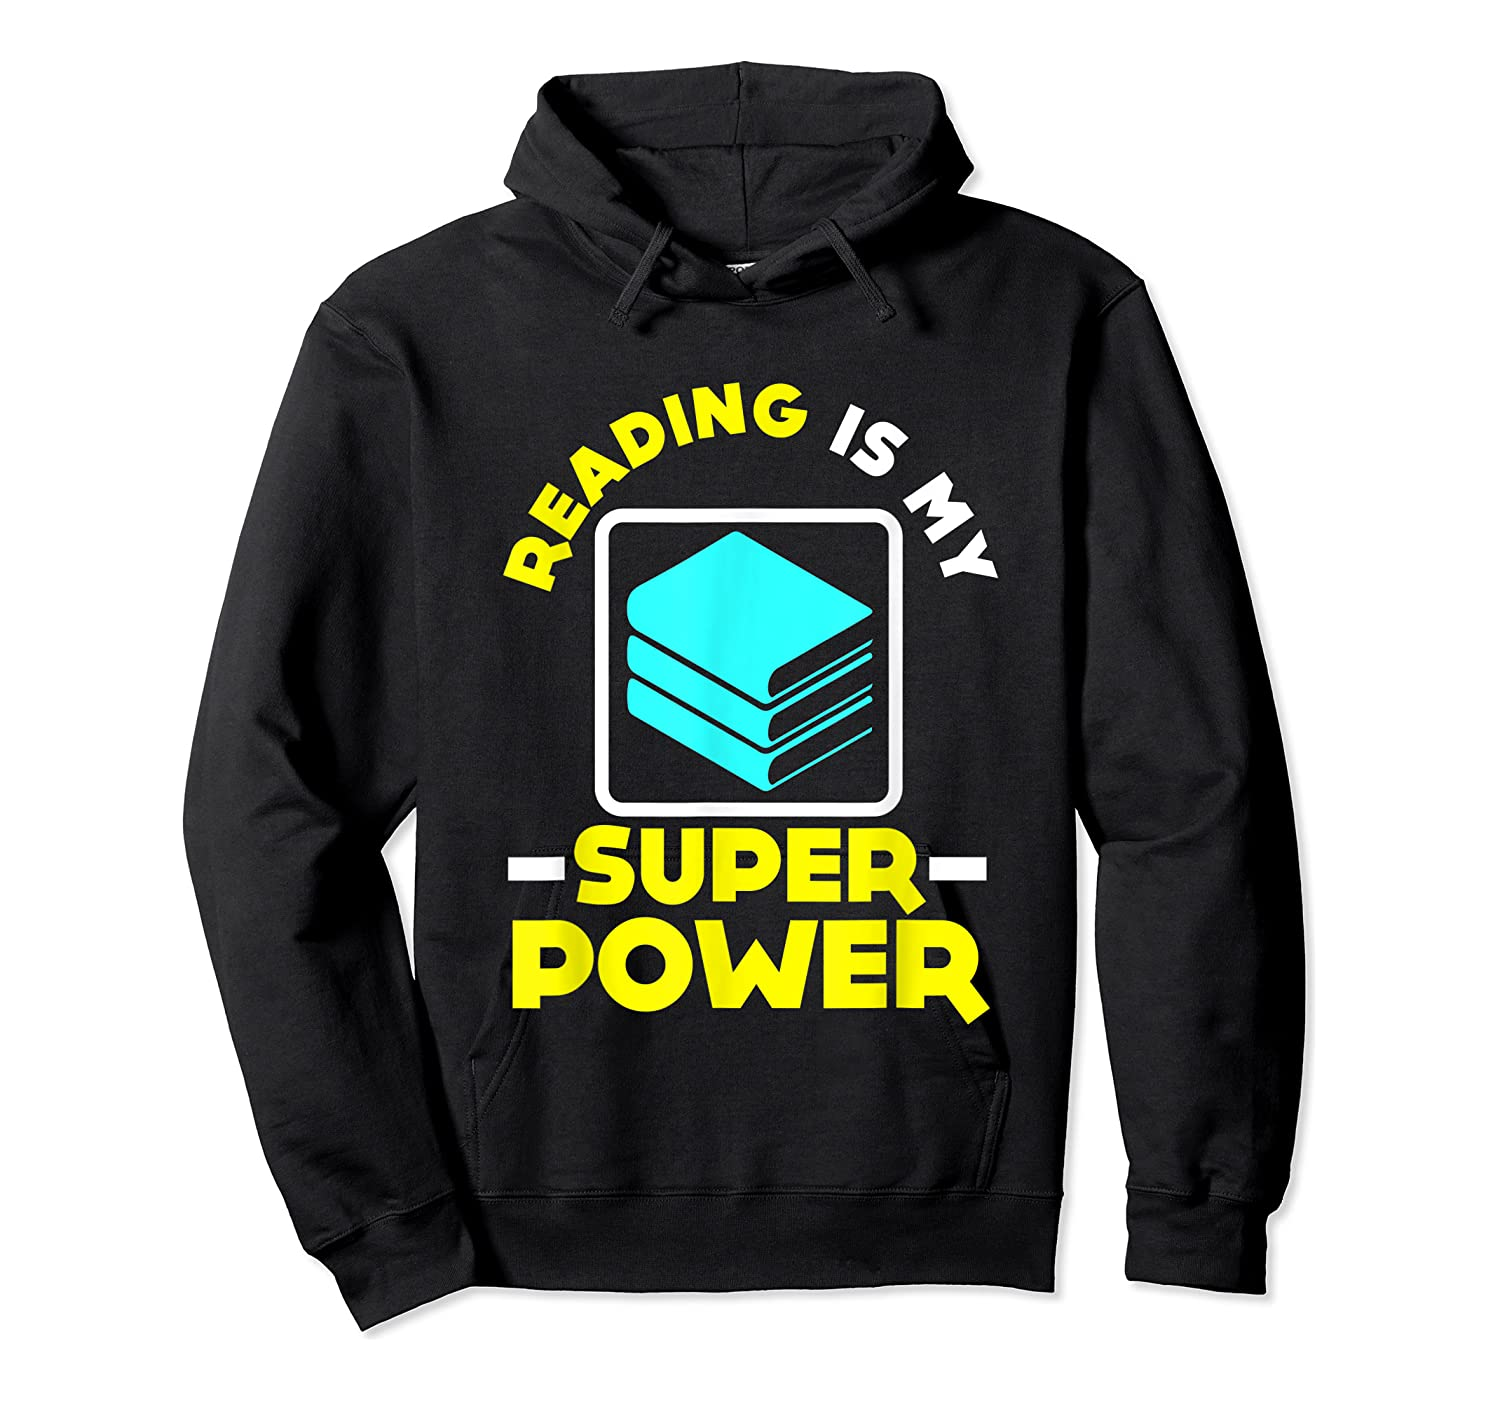 My Superpower Book Lovers Gift Shirts Unisex Pullover Hoodie